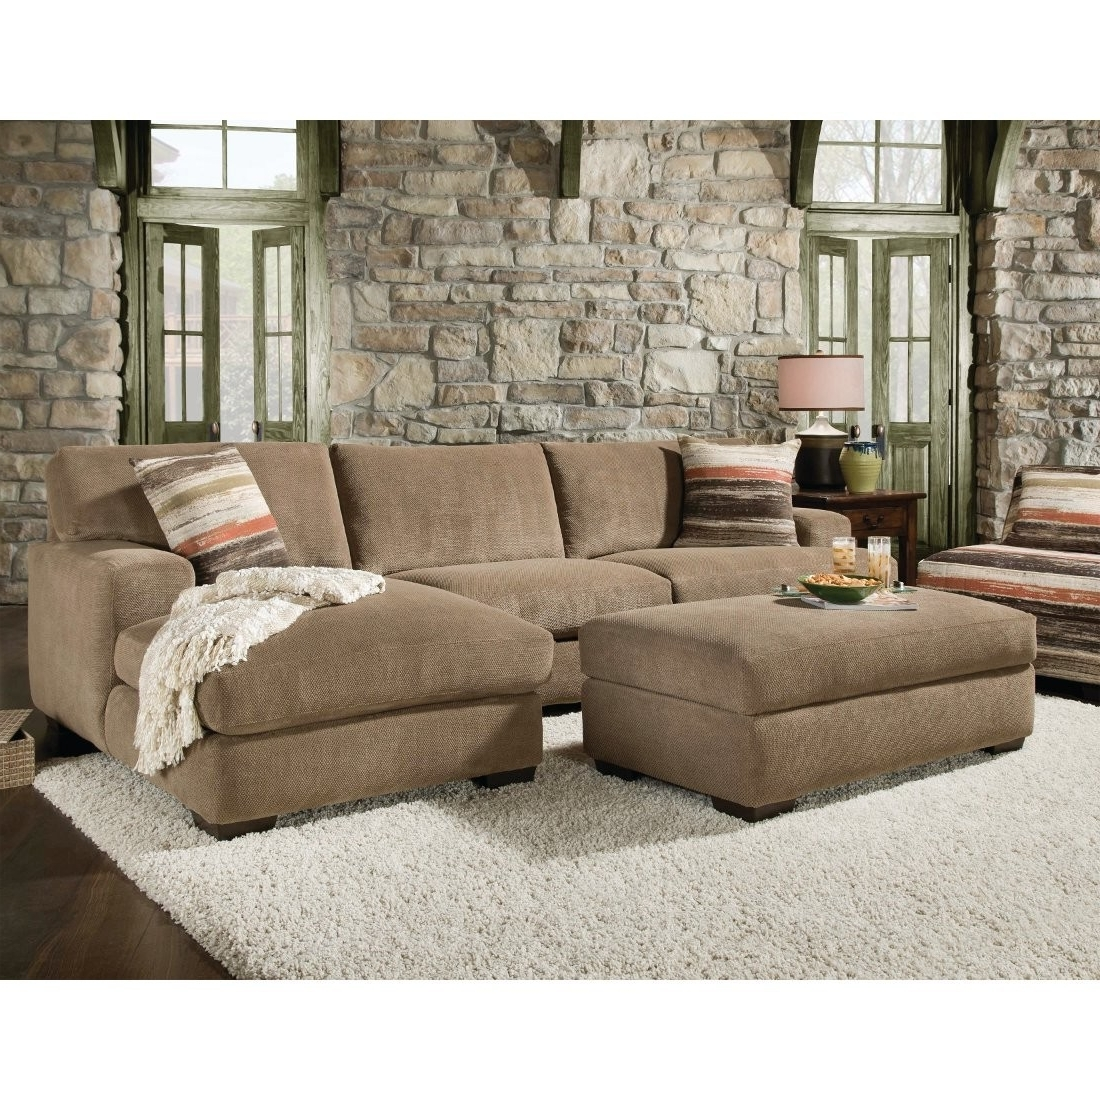 Latest Extra Large Sofas Intended For Sofa : Extra Large Sectionals With Chaise Deep Sofas Deep Couches (View 12 of 15)